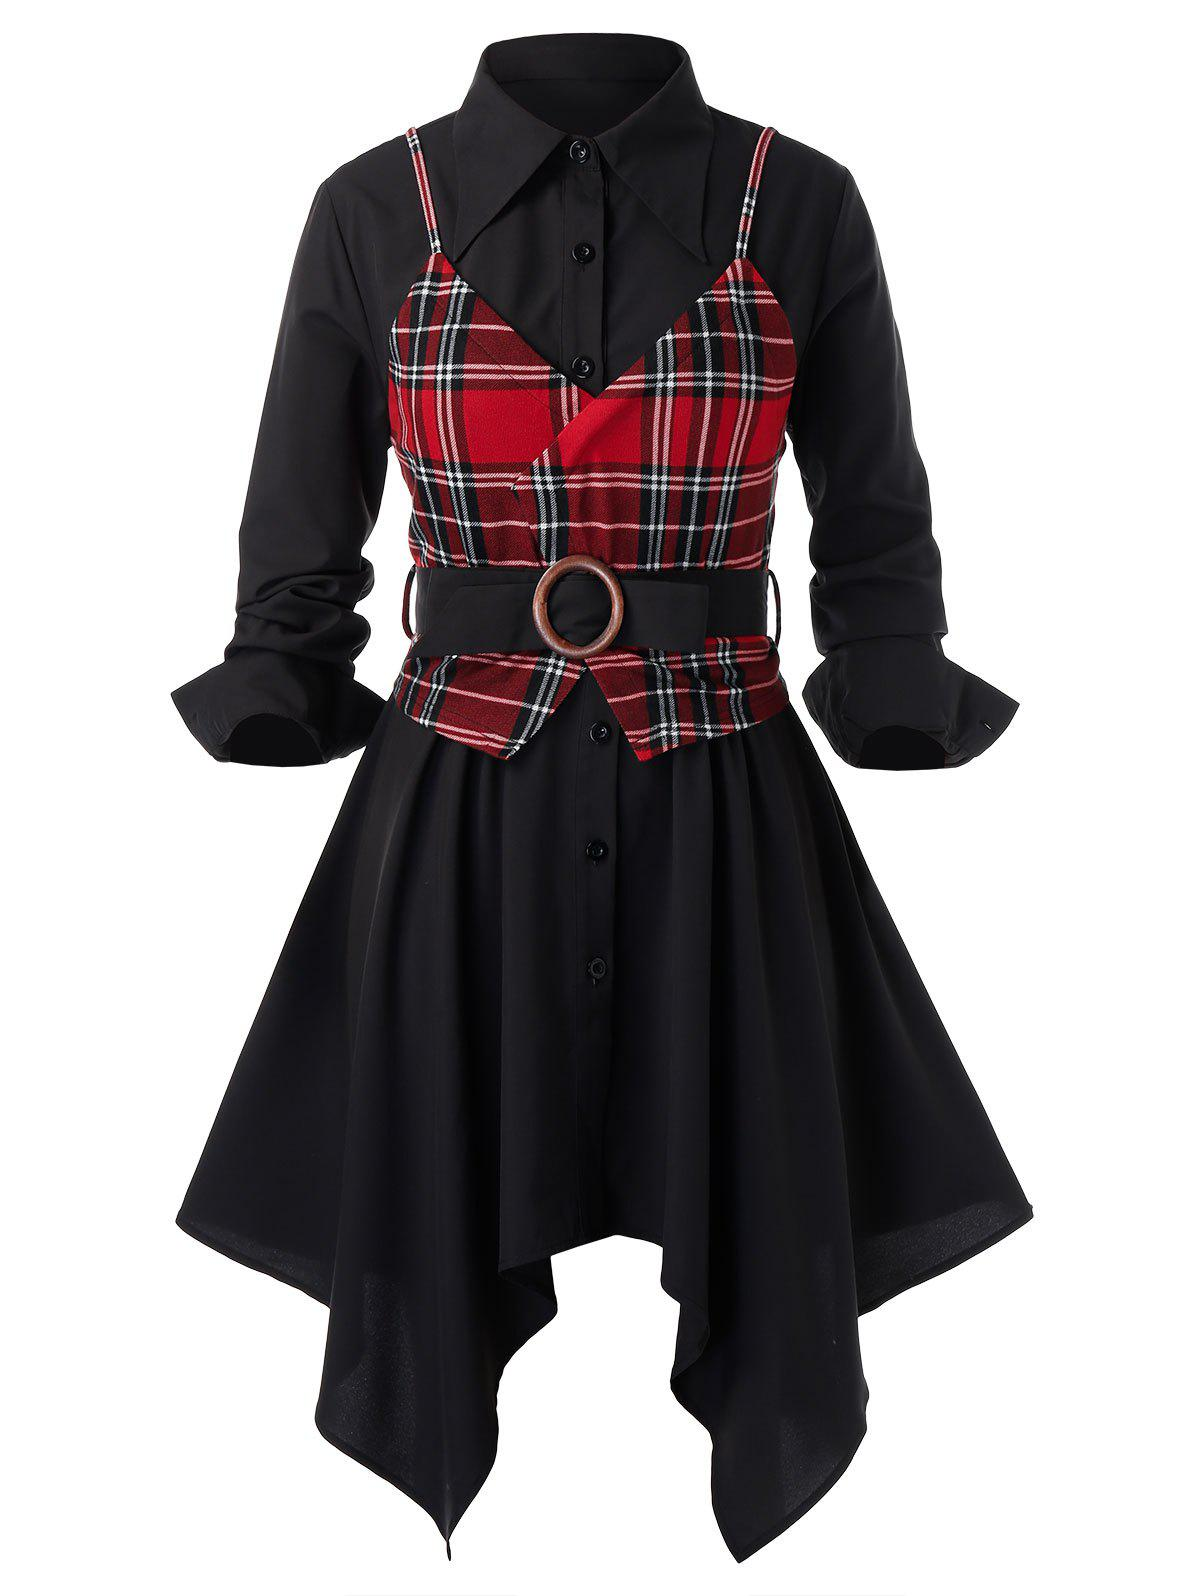 Fashion Plus Size Handkerchief Dress and Plaid Top